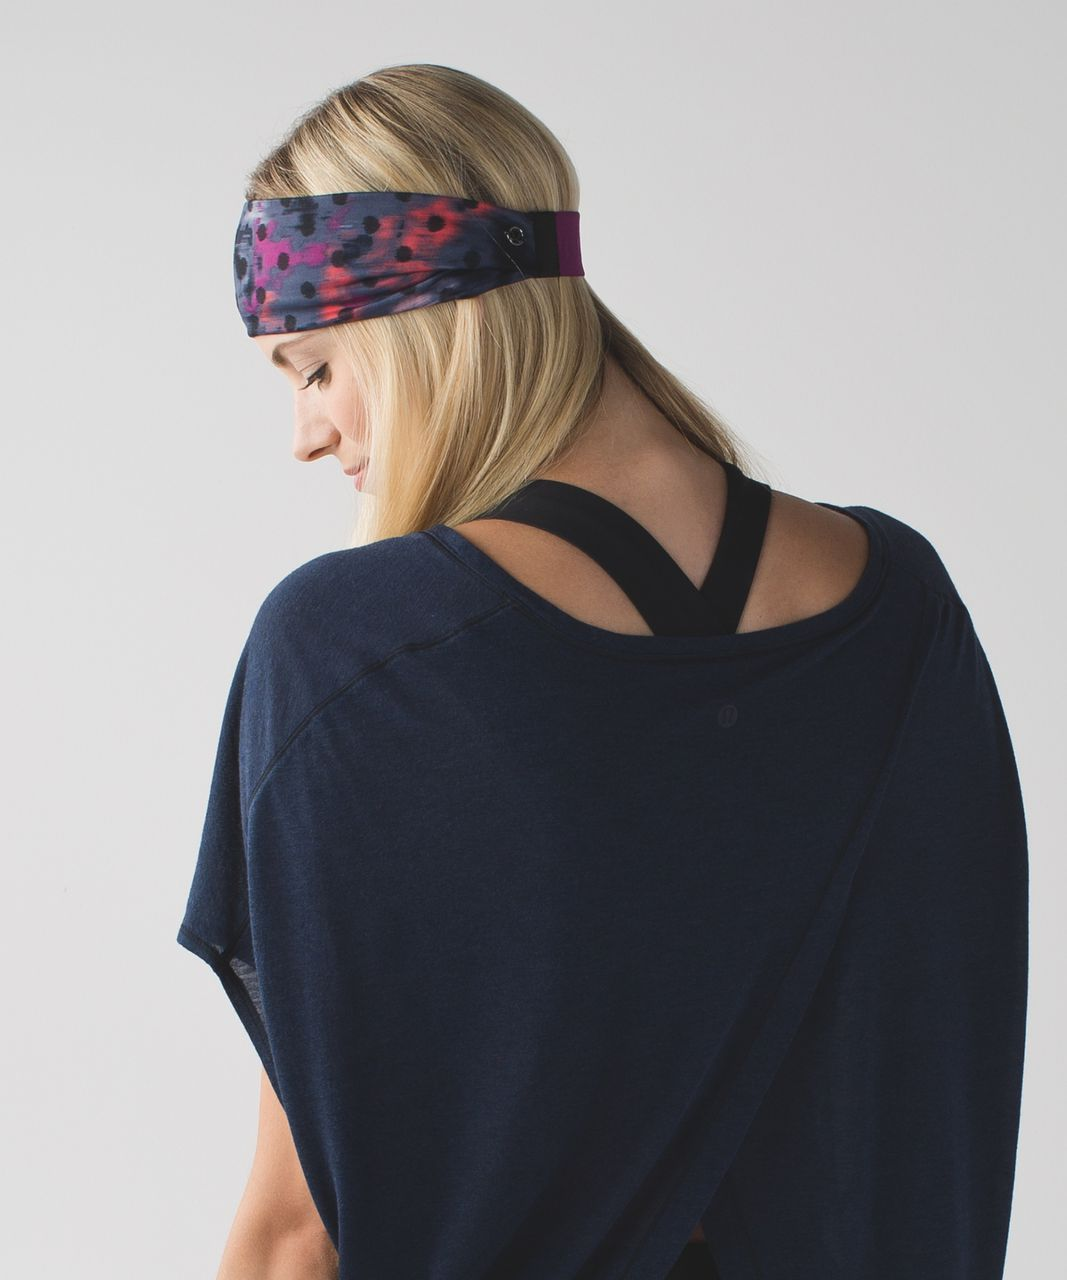 Lululemon Fringe Fighter Headband - Windy Blooms Regal Plum Multi